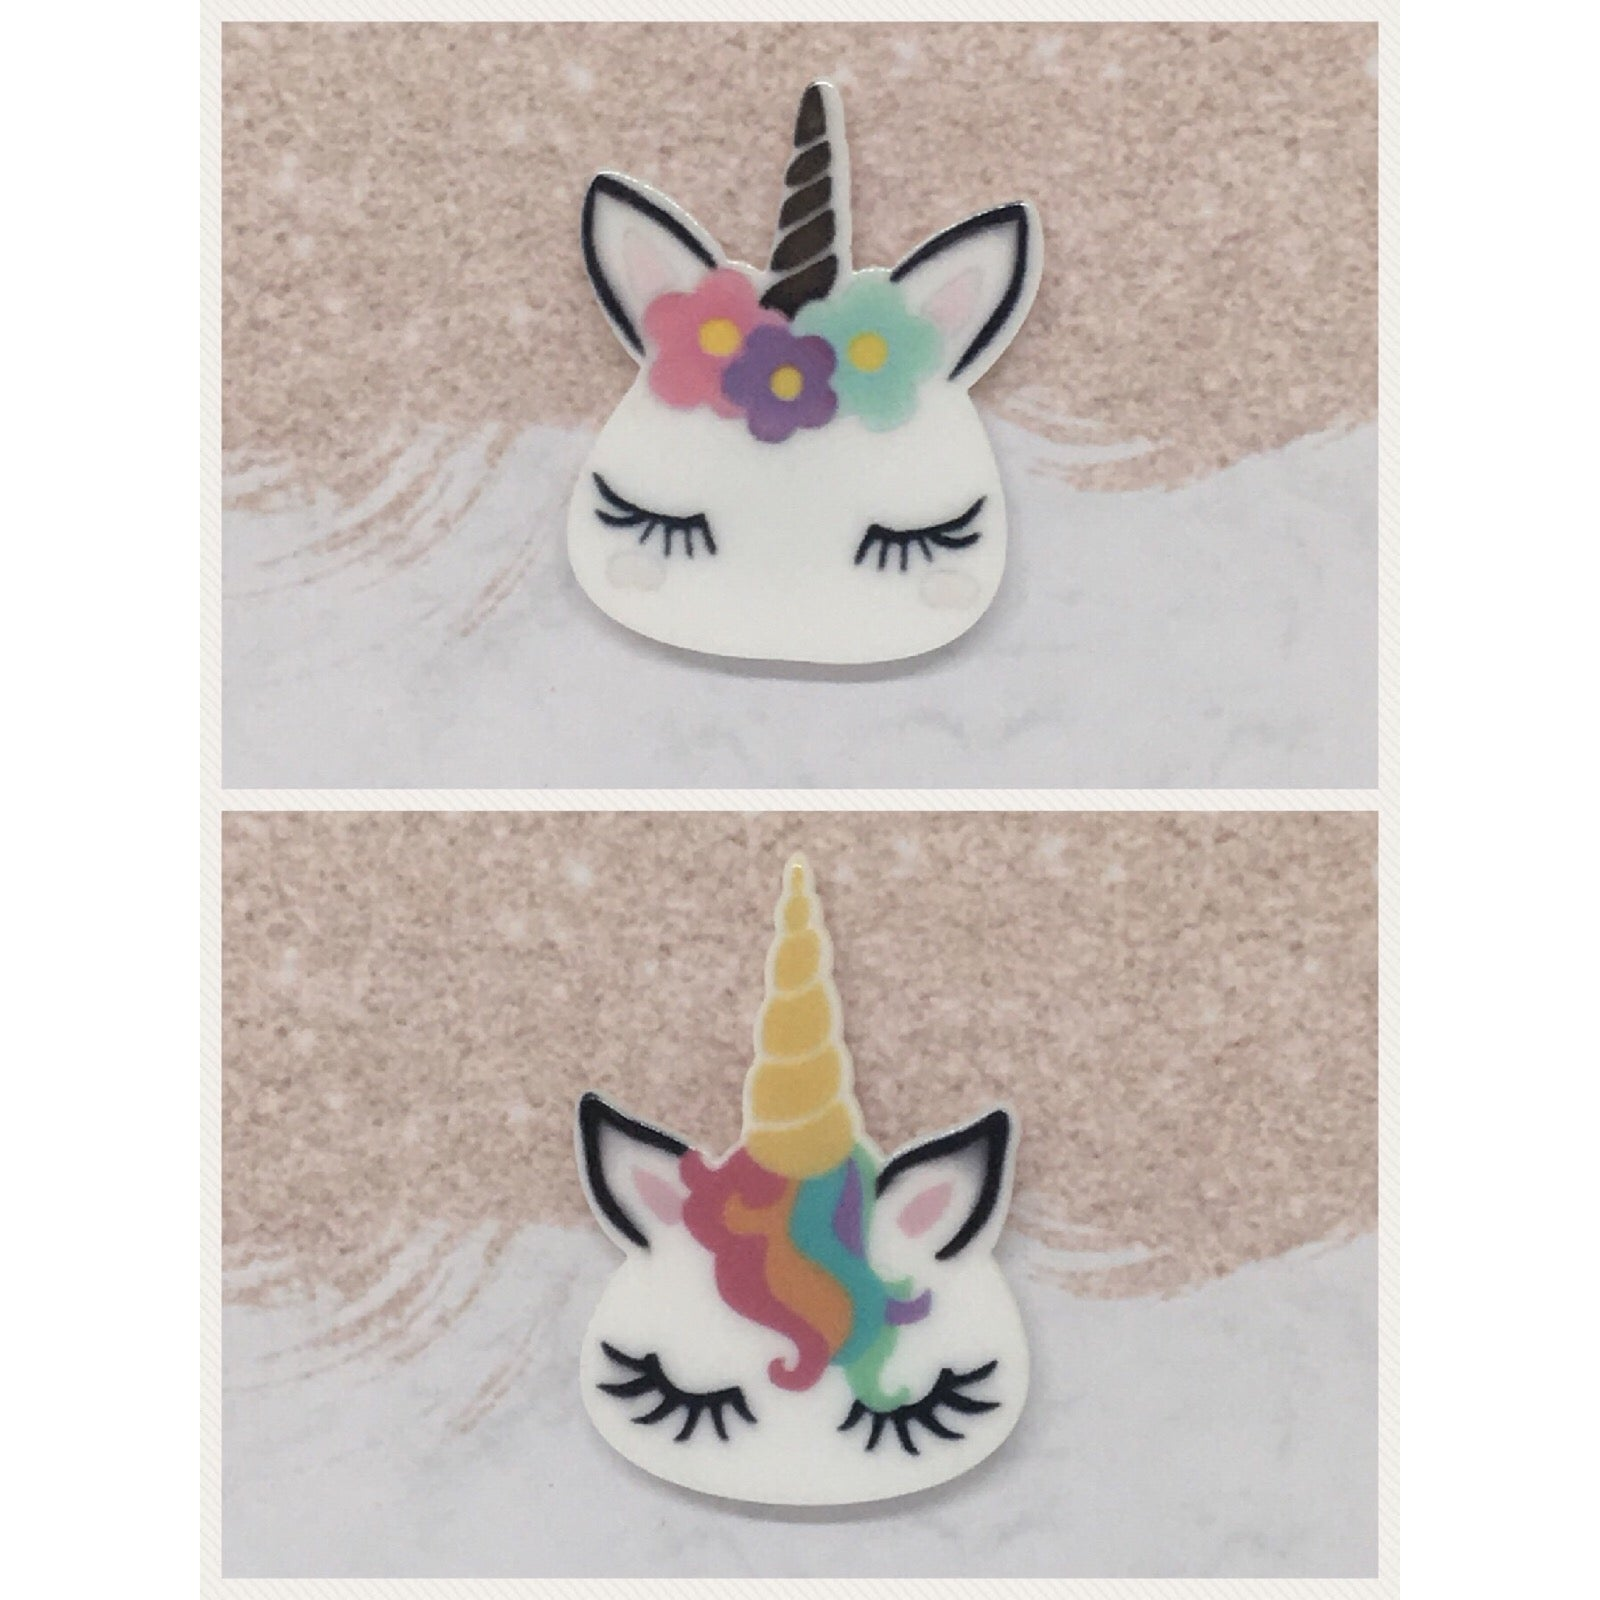 Cute Sleeping Unicorns Needleminder